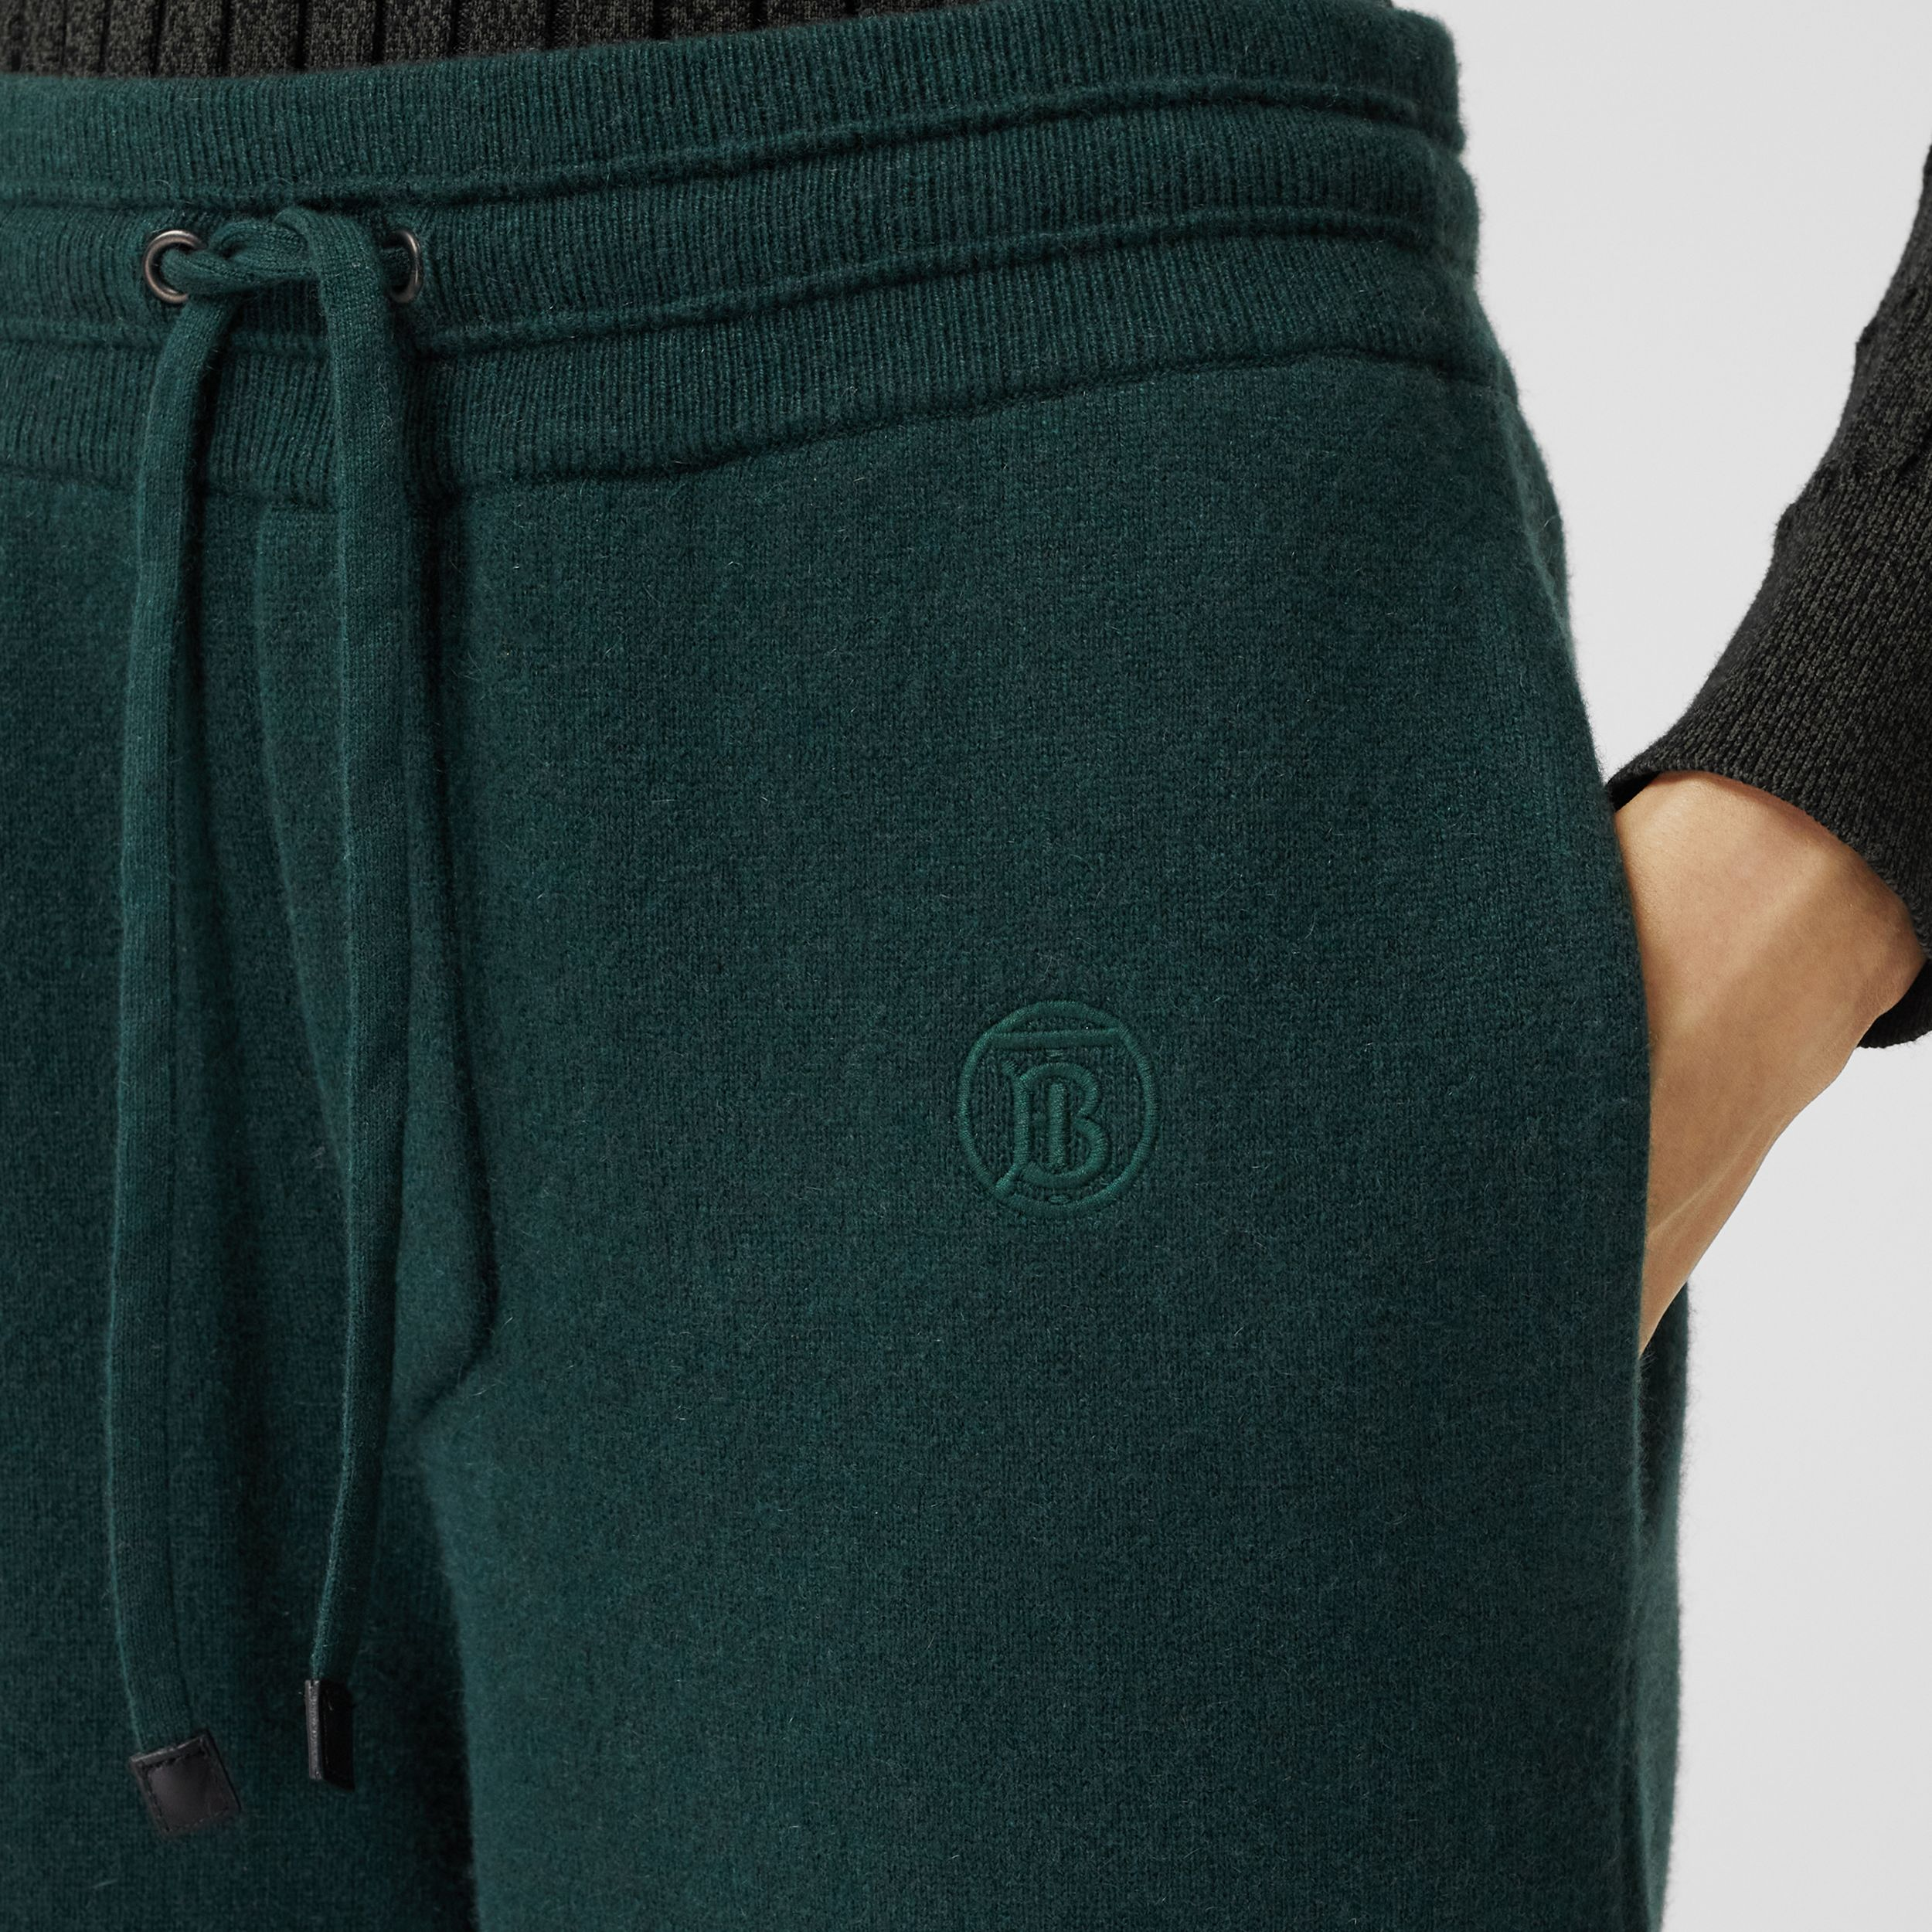 Monogram Motif Cashmere Blend Jogging Pants in Bottle Green - Women | Burberry - 2